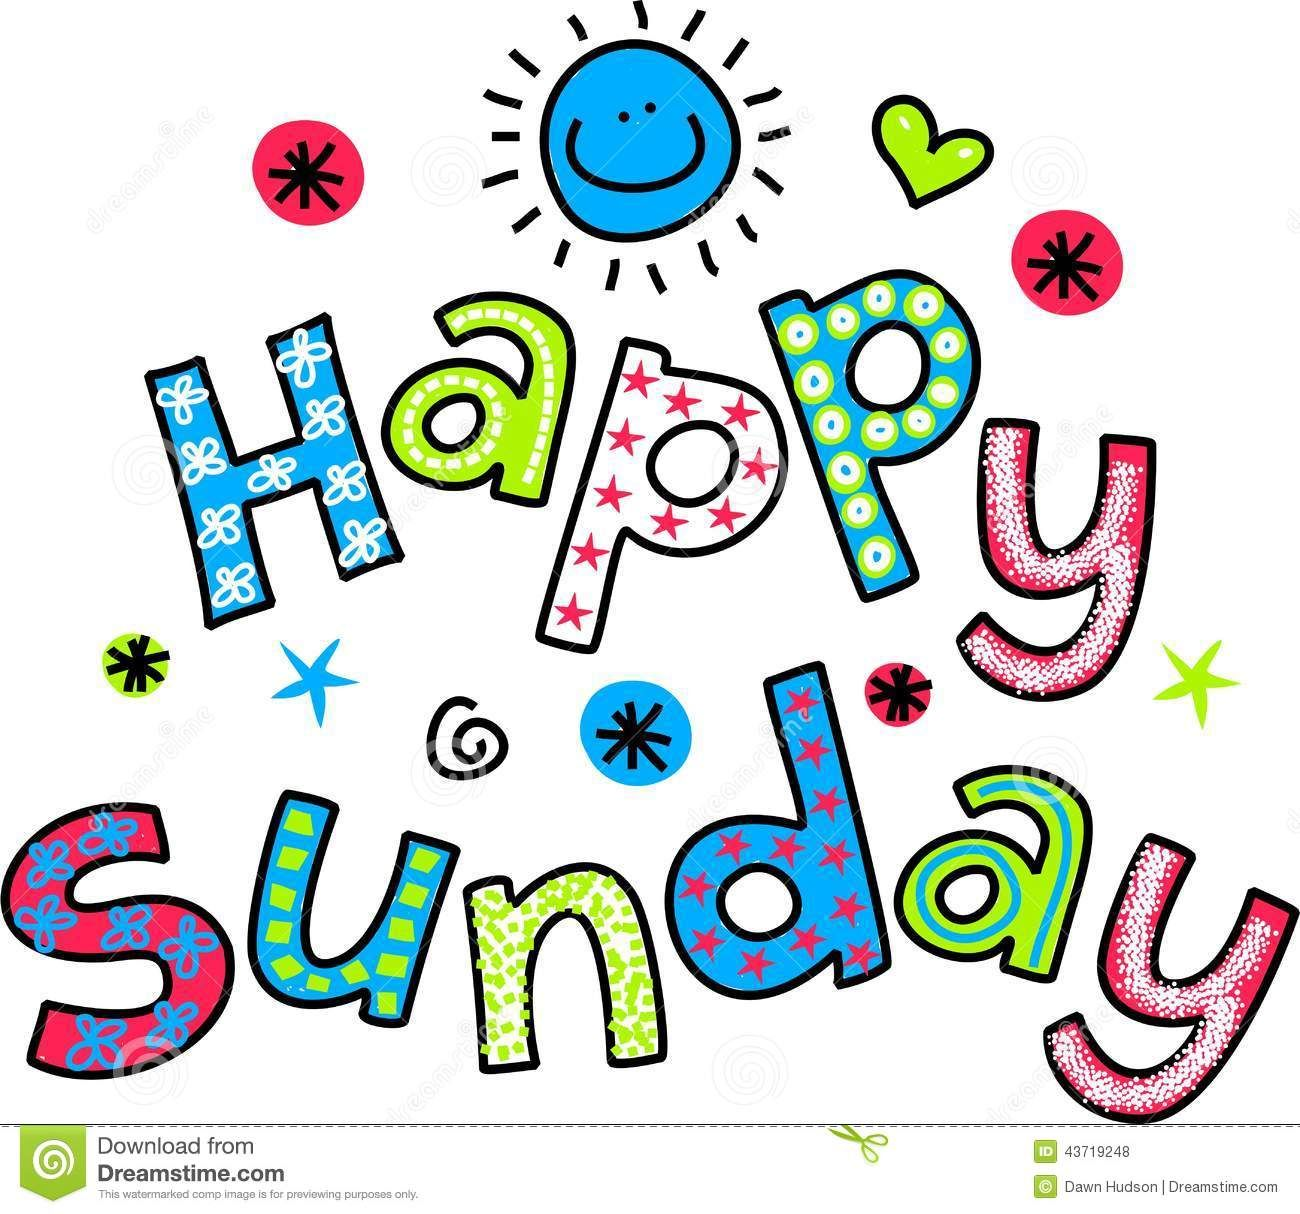 Happy Sunday Clipart - ClipartFest